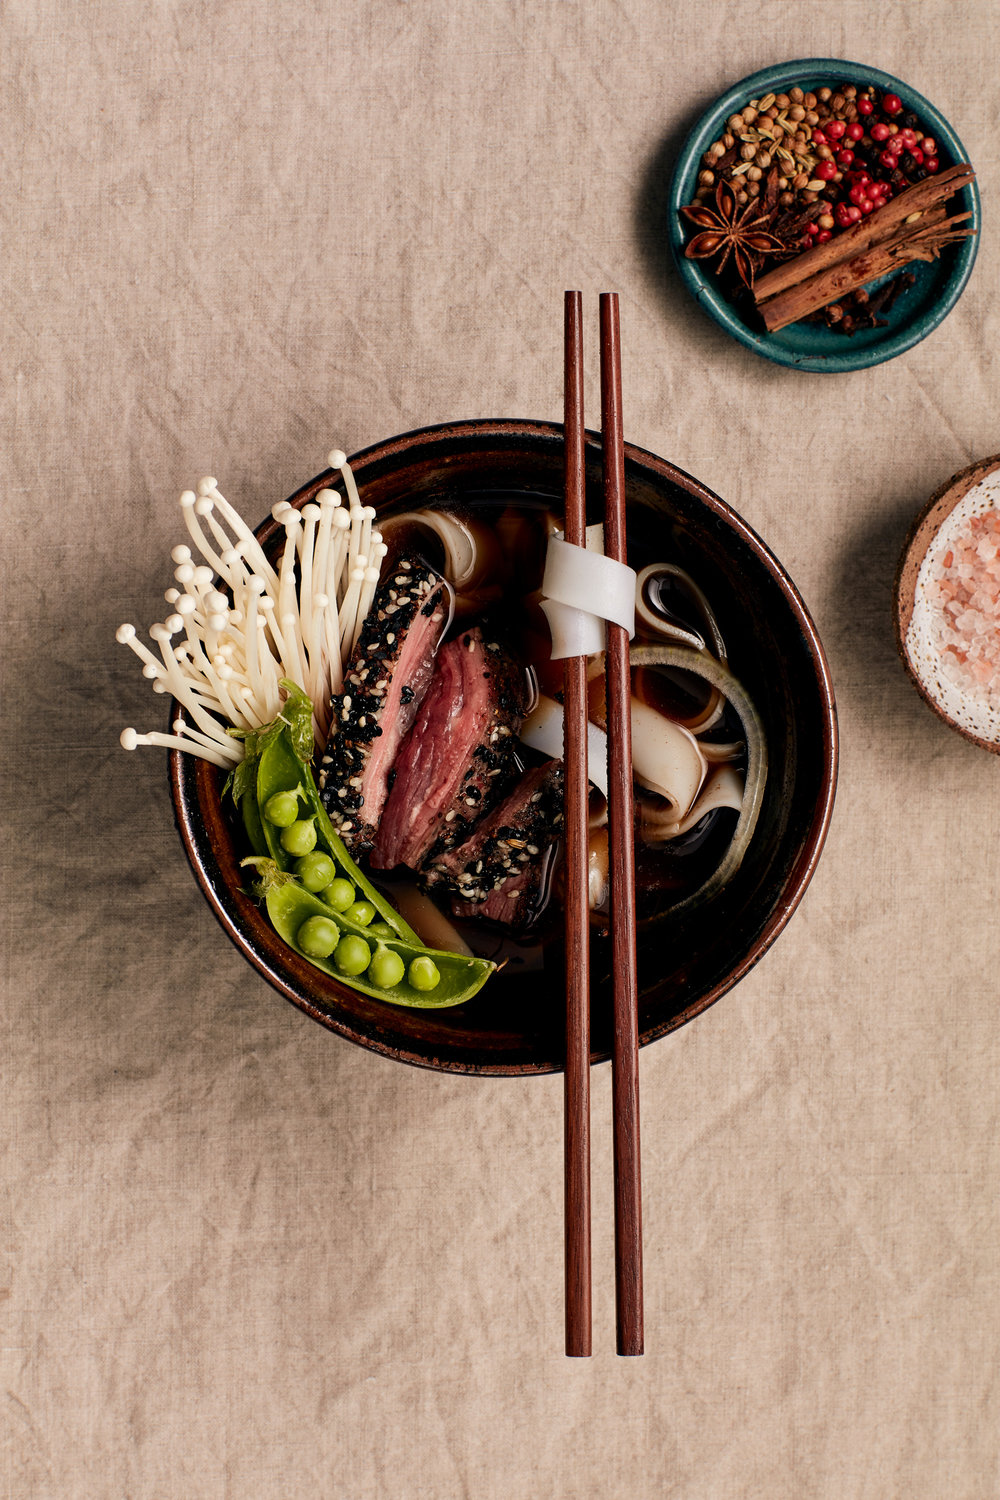 SESAME-CRUSTED BEEF PHO [ART DIRECTION + STYLING] PHOTOGRAPHY BY NIC GOSSAGE